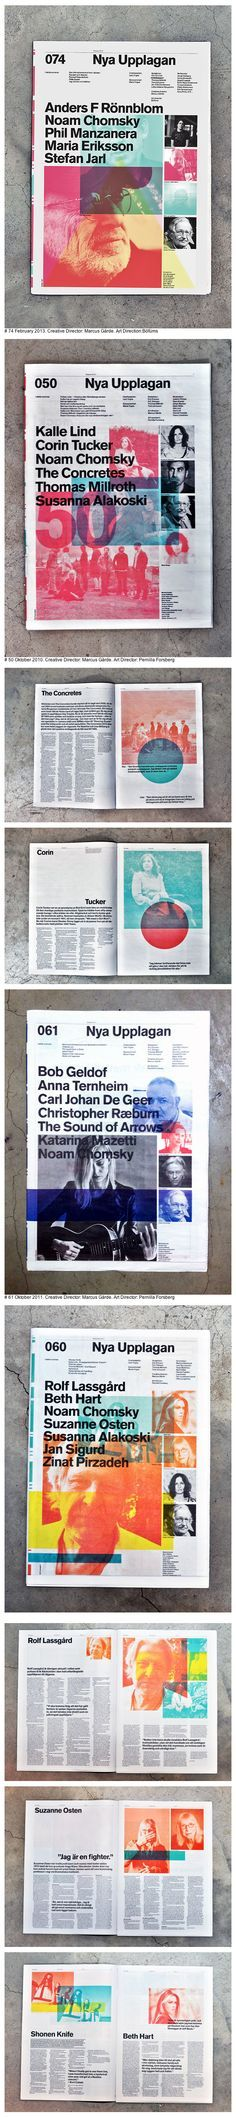 swiss grid, colorful, bold, modern, experimental, editorial design, bright, saturated, layout, typography